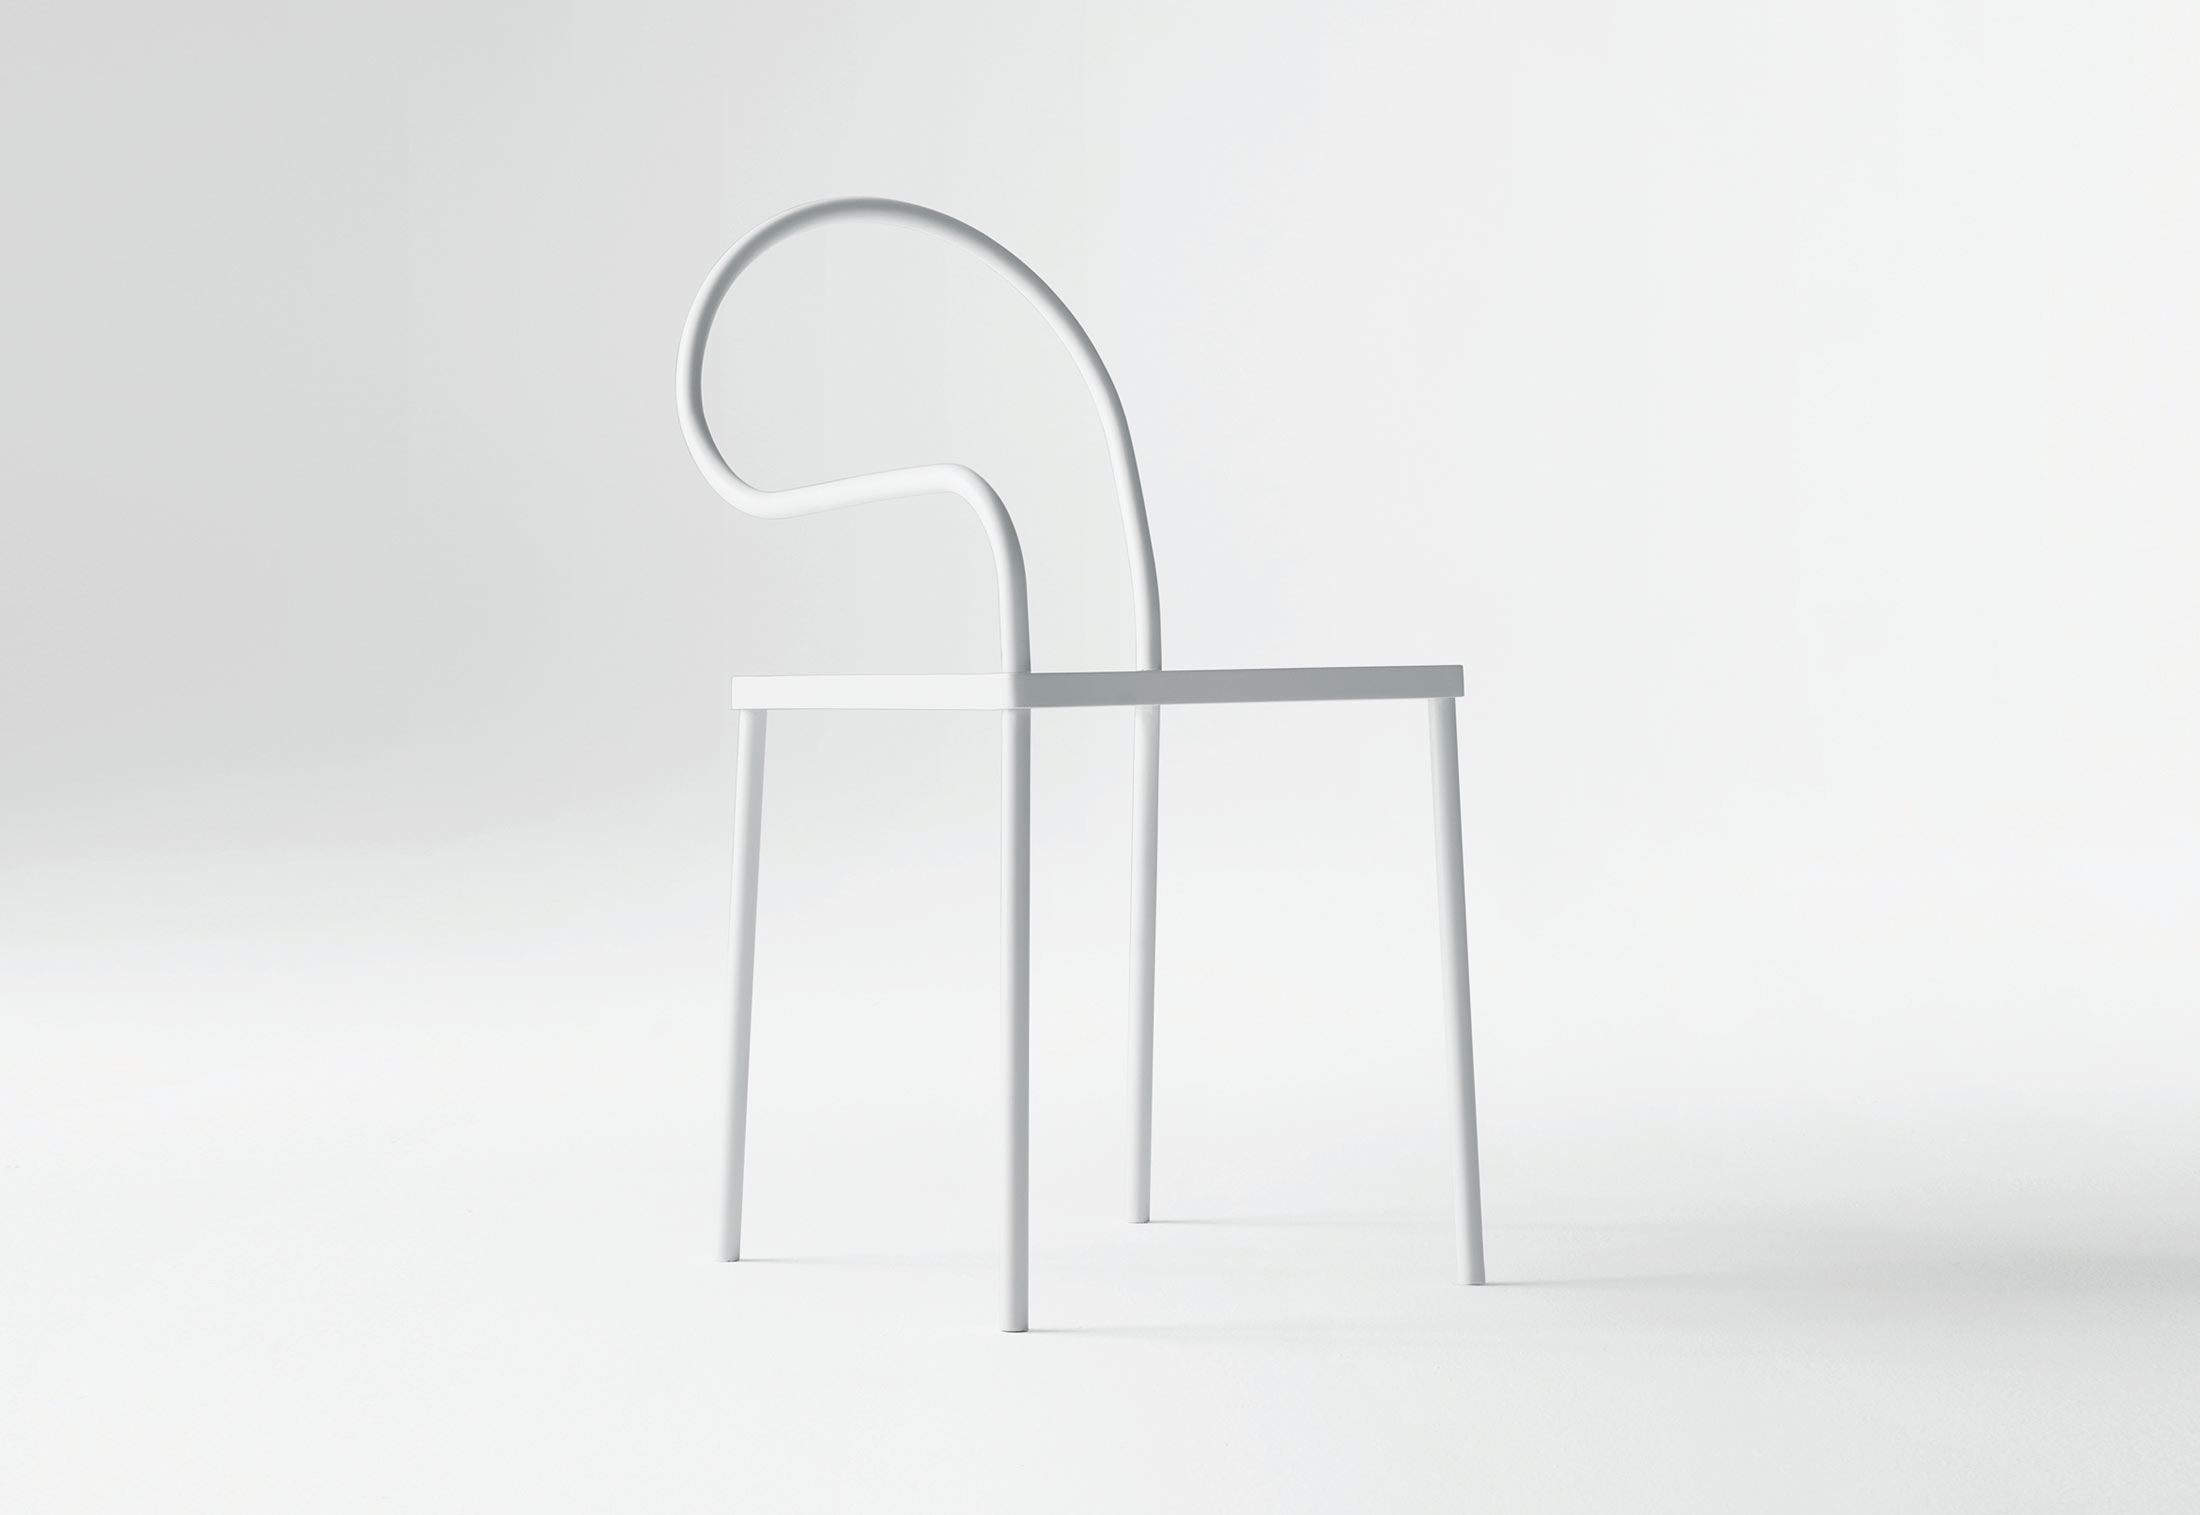 steel chair specification accora accessories softer than by desalto stylepark